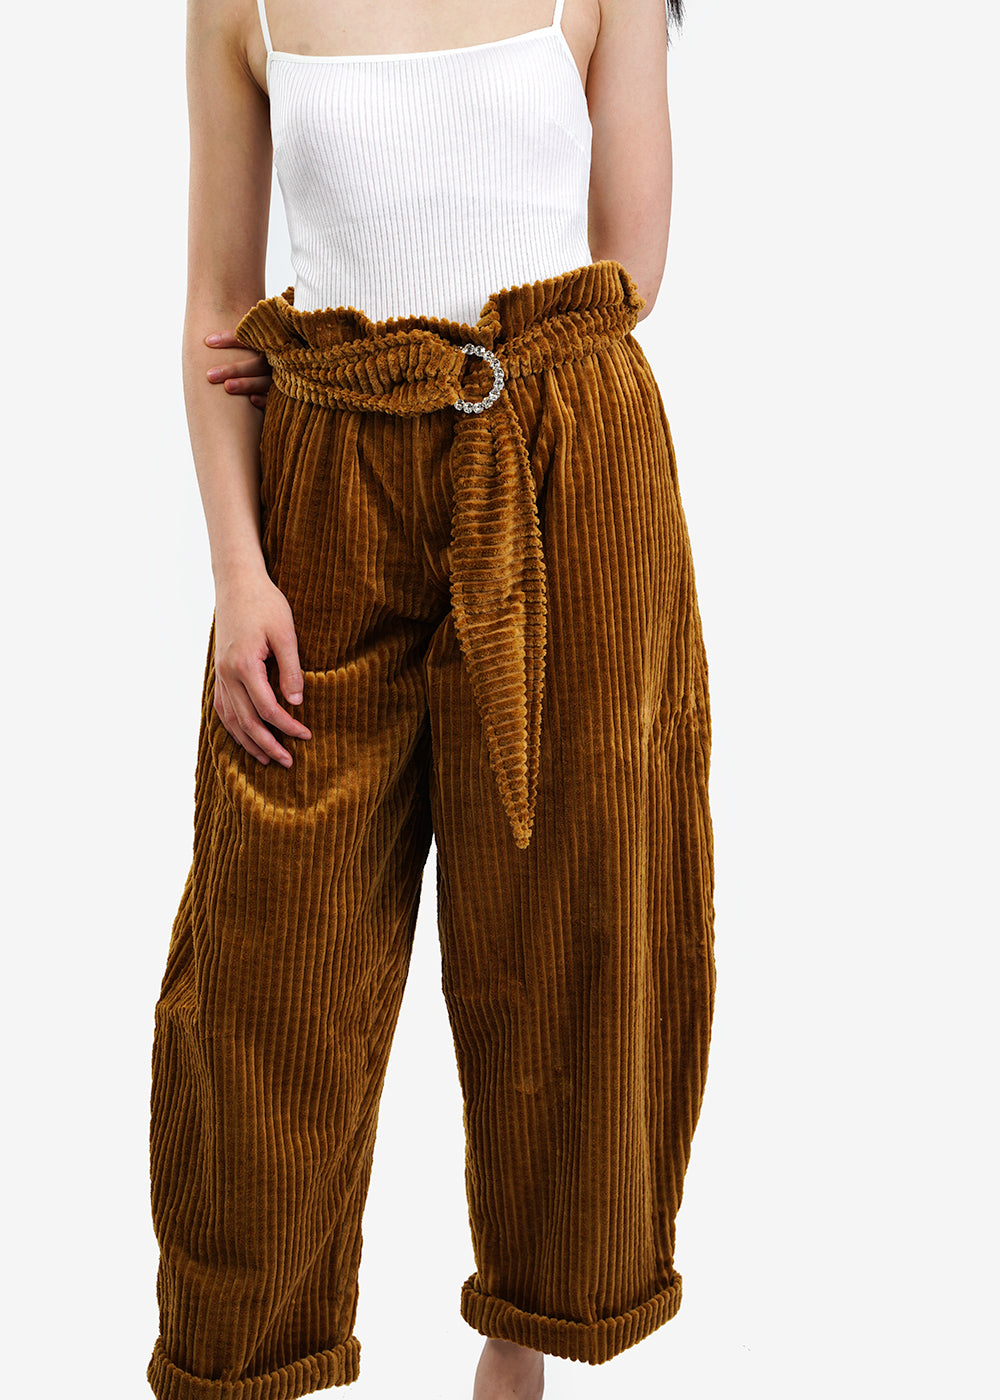 323 Broccoli Trousers — Shop sustainable fashion and slow fashion at New Classics Studios